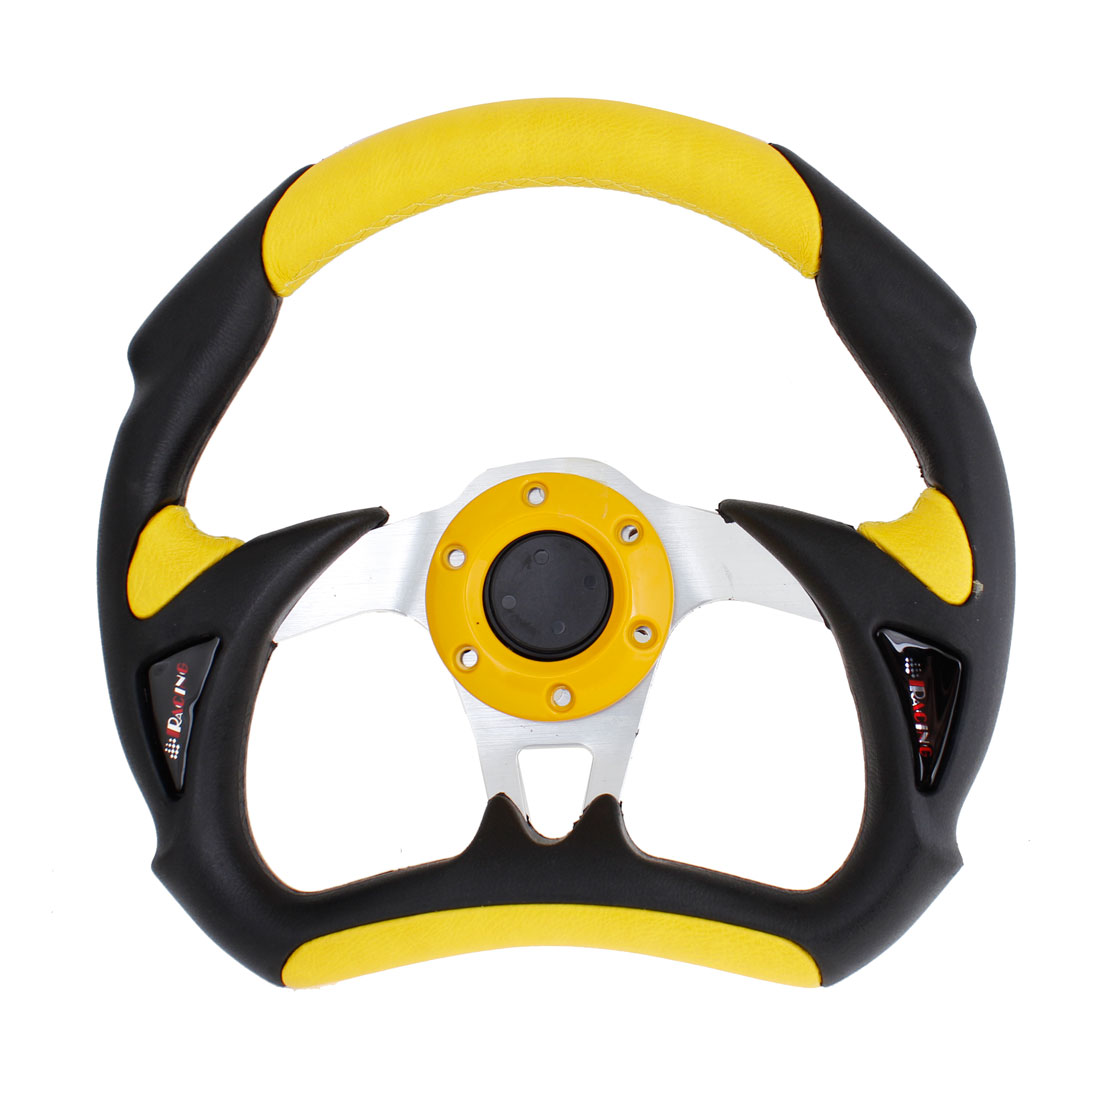 "Yellow Black Faux Leather Wrapped 12"" Dia Racing Steering Wheel for Car"